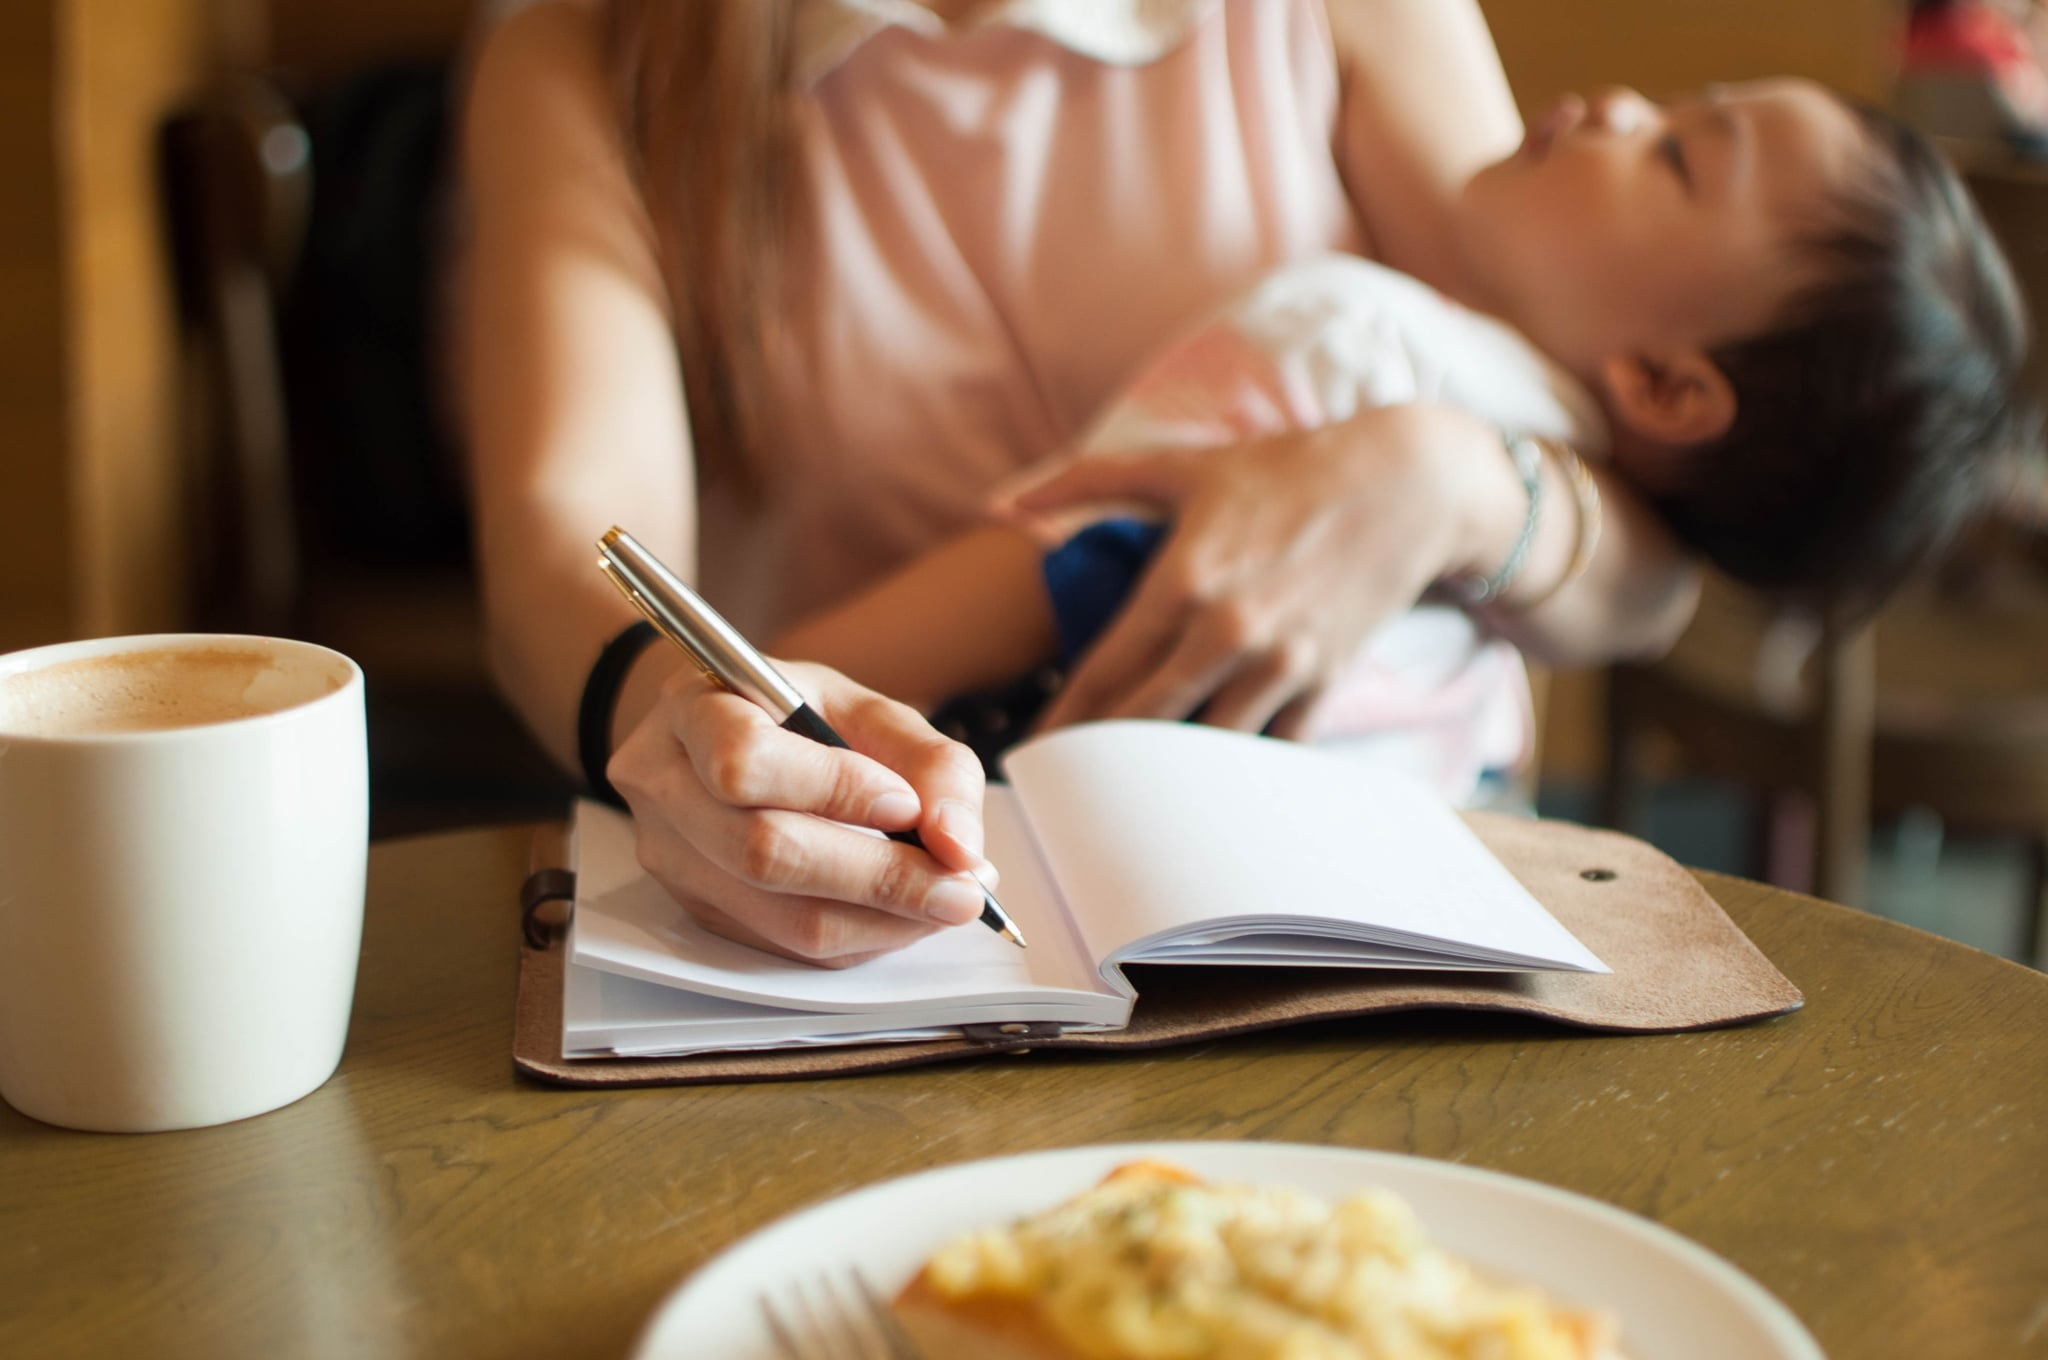 Working mom with her sleeping son on her arm while writing on a note pad